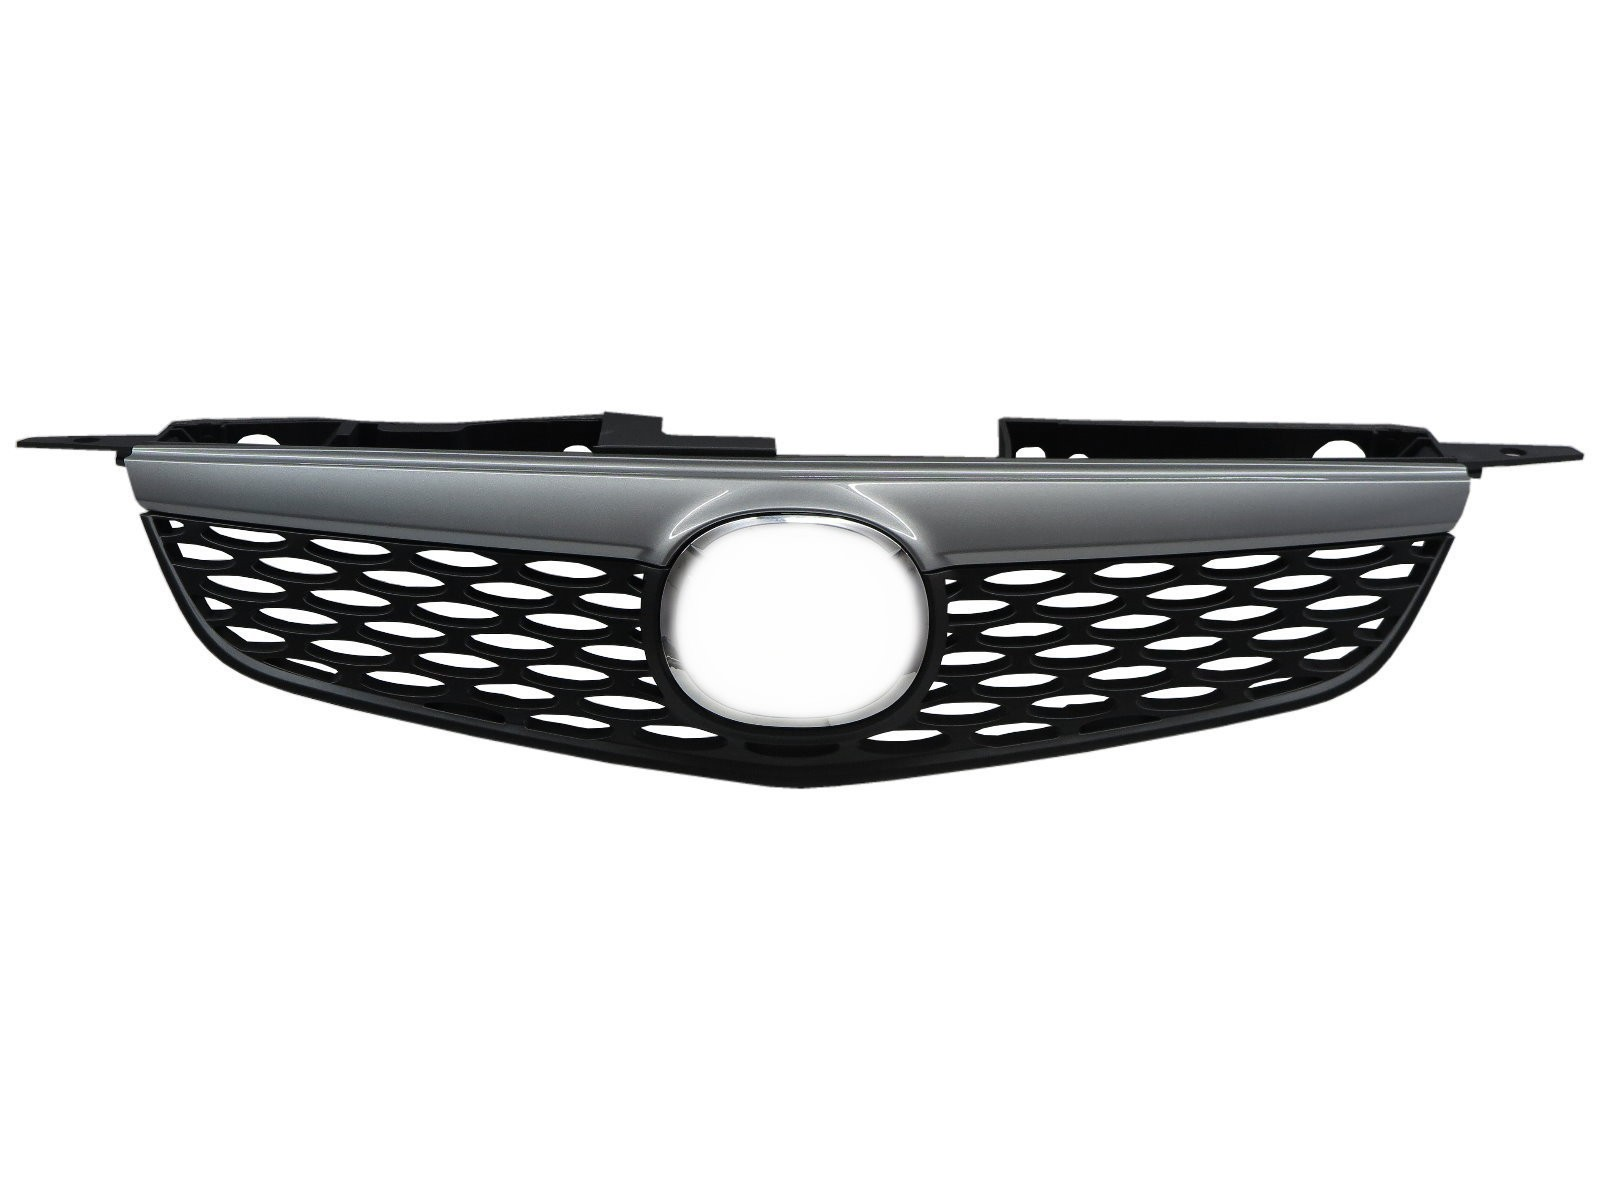 CrazyTheGod 323 BJ Eighth generation 1998-2004 Sedan 4D GRILLE/GRILL Chrome/Black for MAZDA